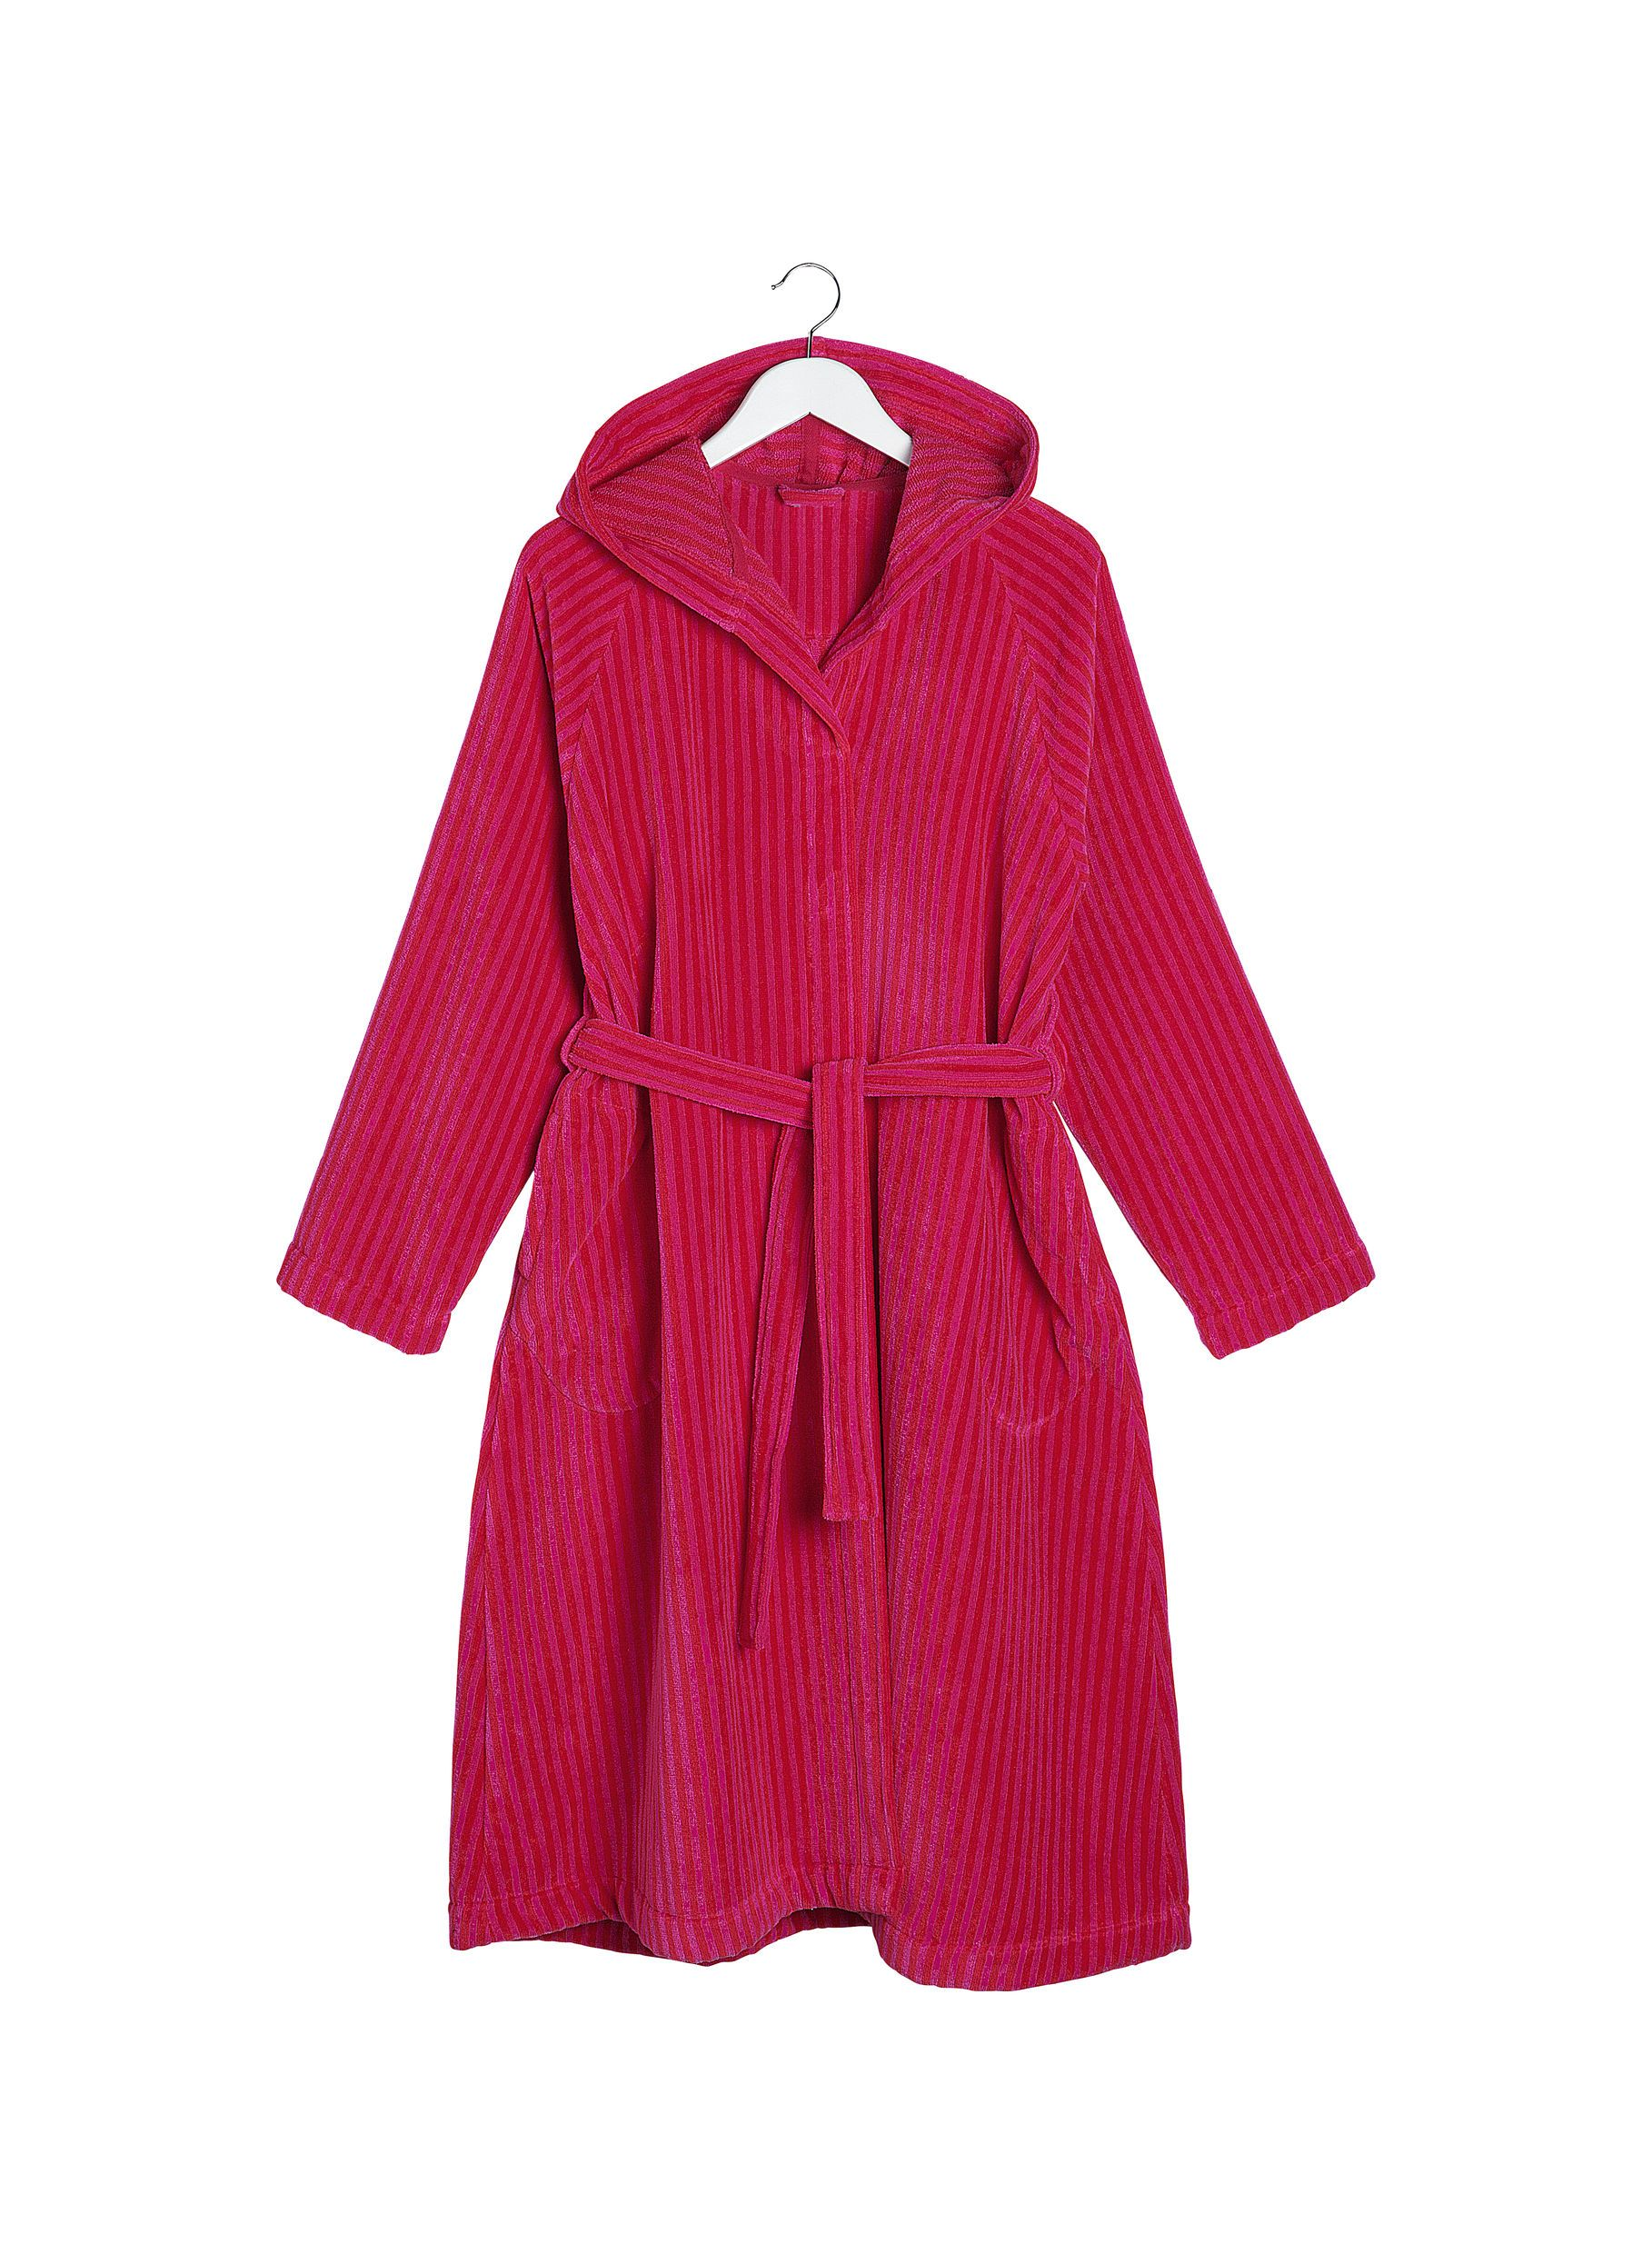 Marimekko, Siro Mari Hooded Bath Robe, XS/S / Red/Pink- Placewares